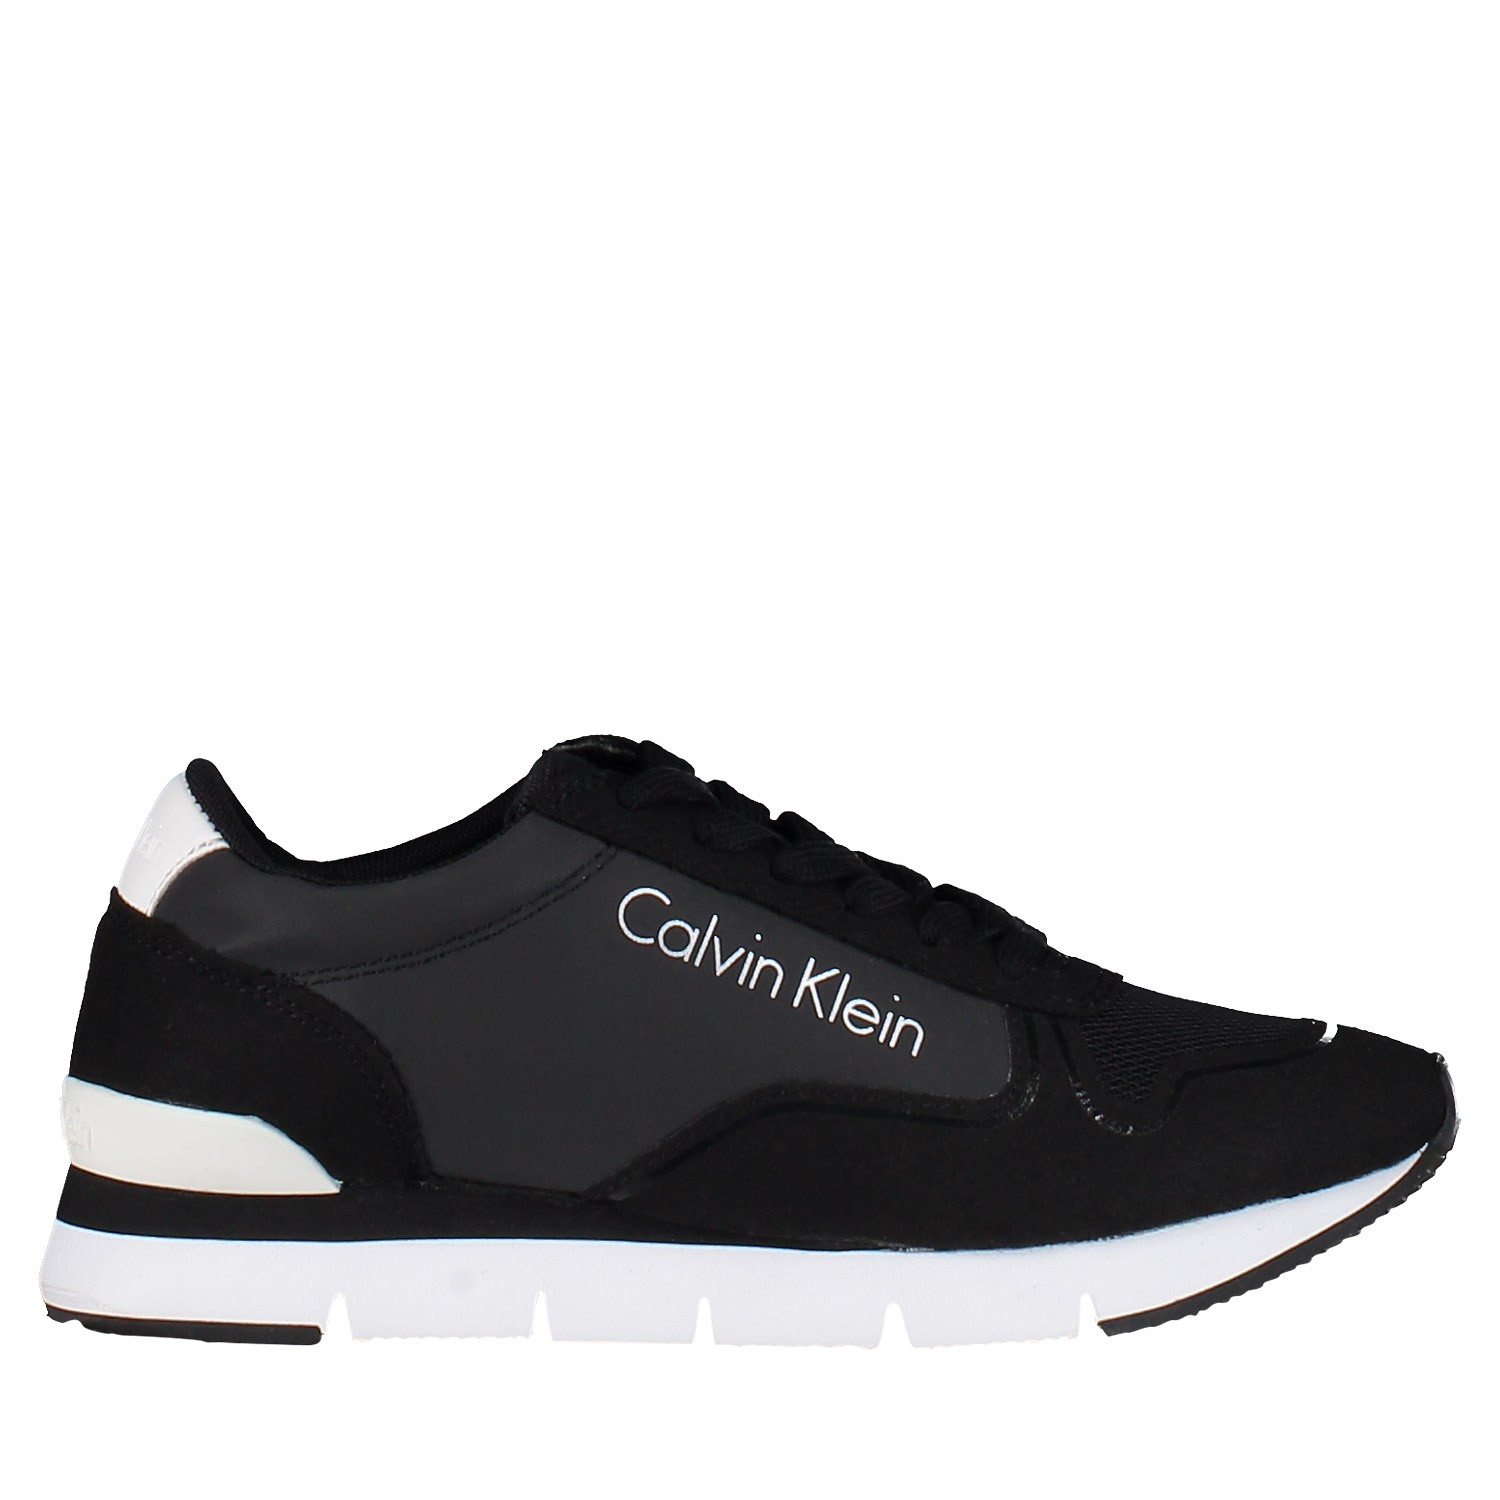 Picture of Calvin Klein TORI womens sneakers black